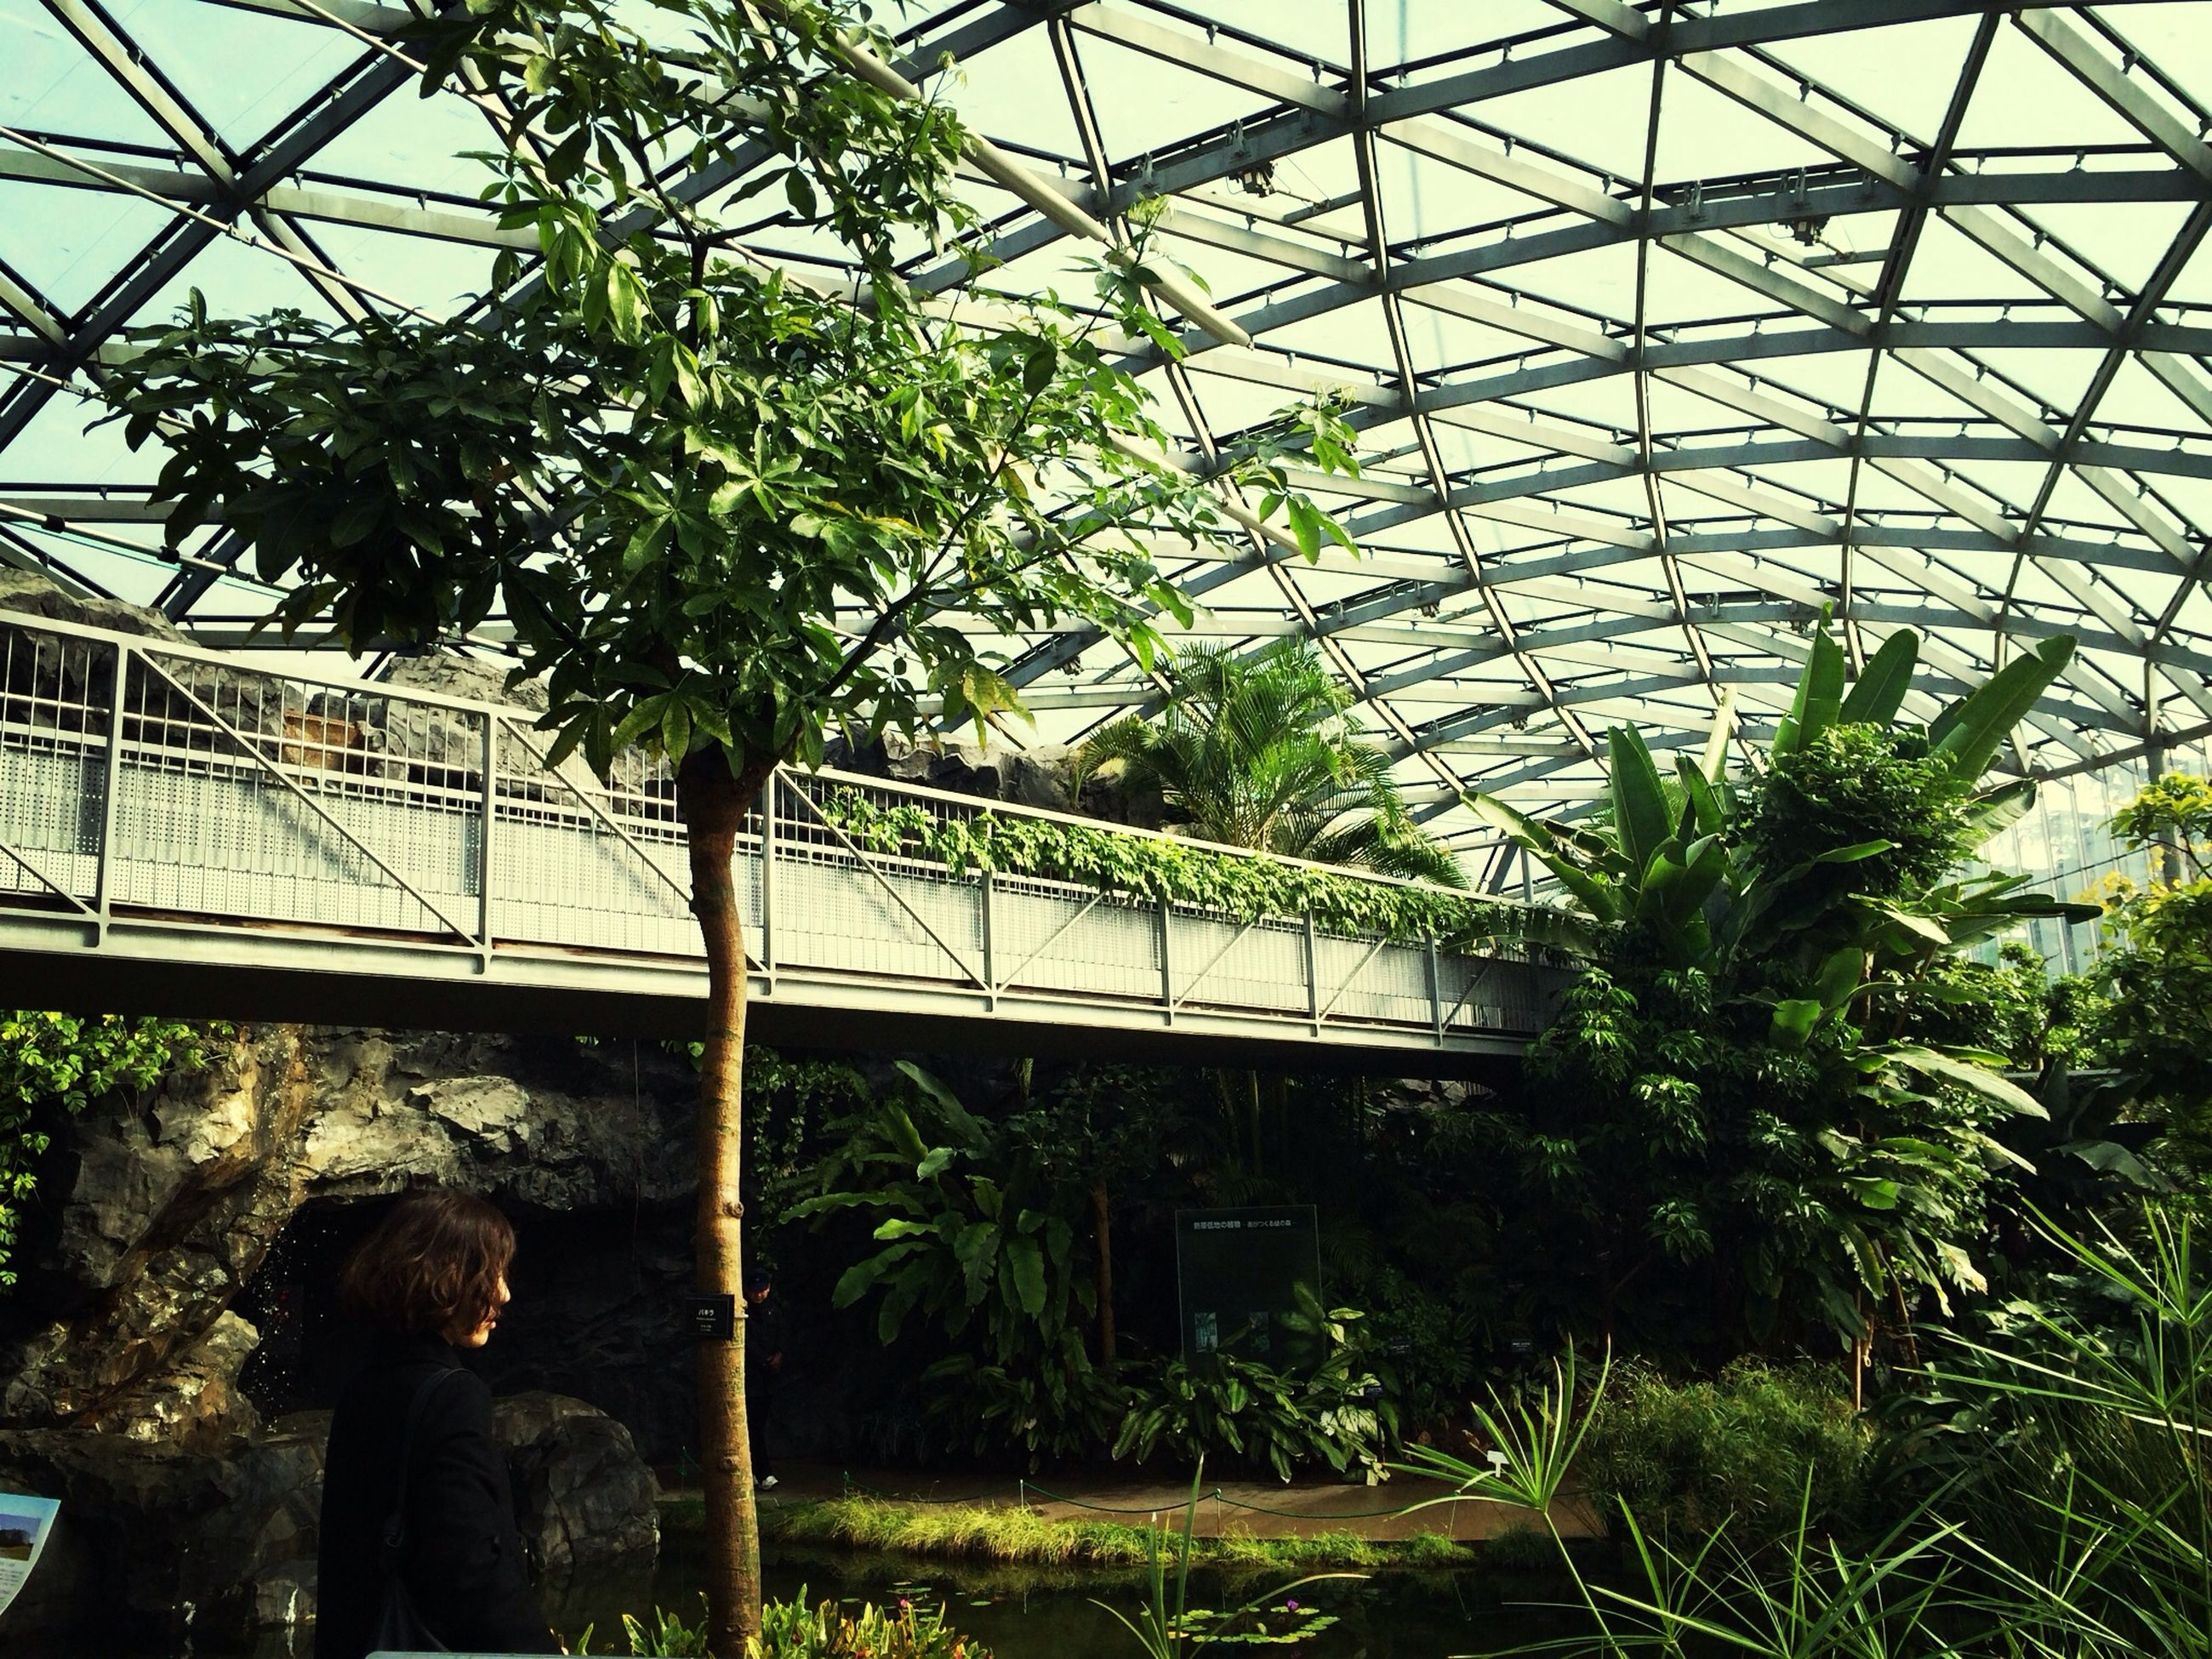 built structure, tree, architecture, lifestyles, men, leisure activity, rear view, standing, indoors, connection, person, plant, bridge - man made structure, day, metal, growth, full length, green color